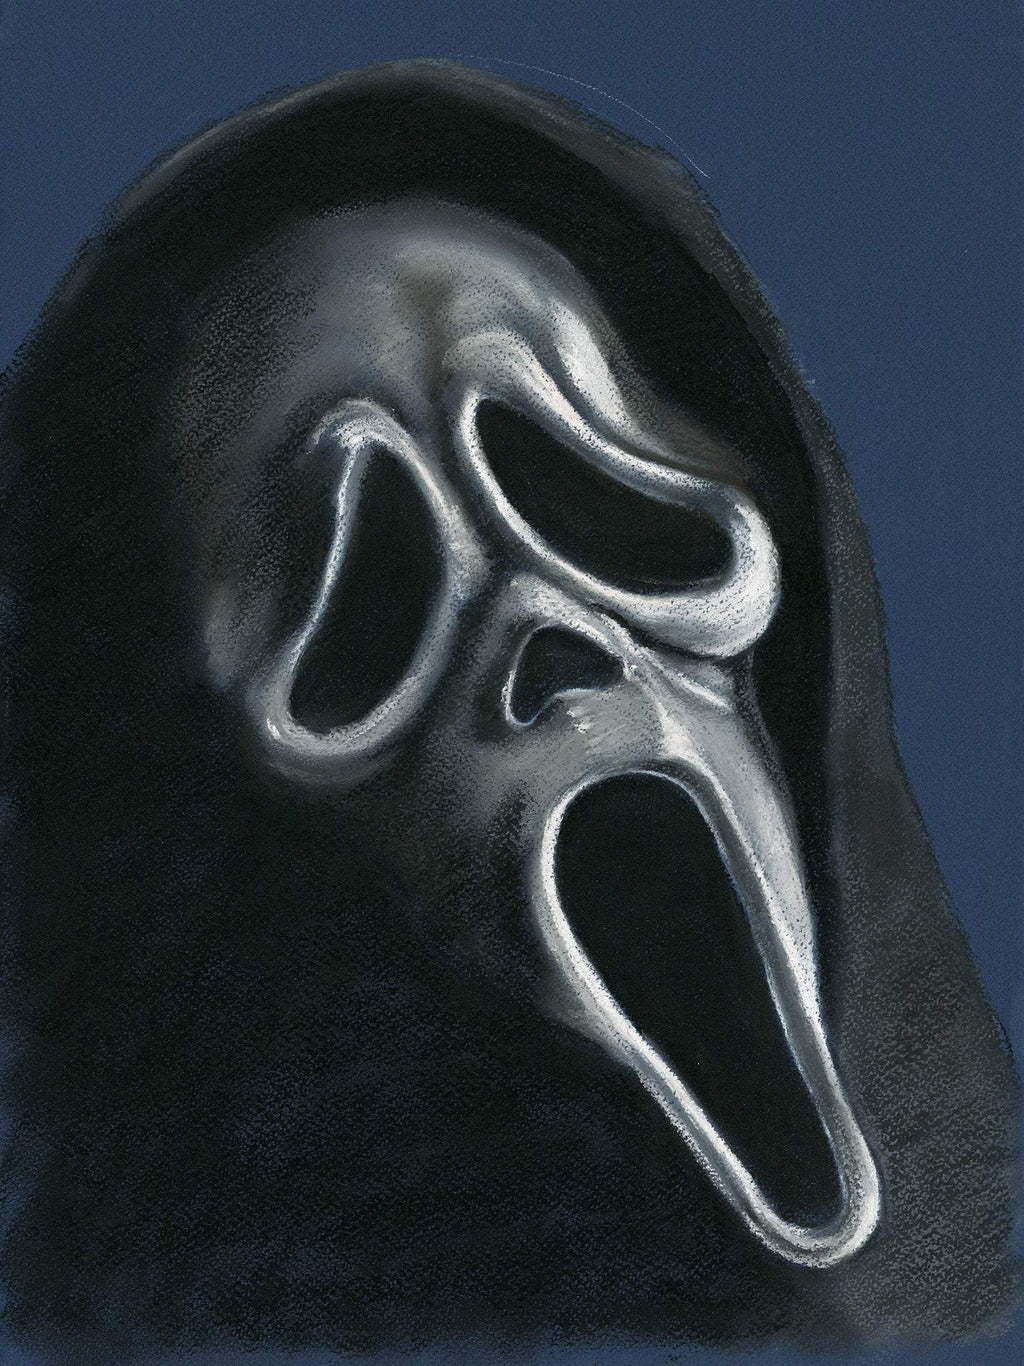 SCREAM - Ghostface - Art Print ART PRINT ChantalLauraHandley